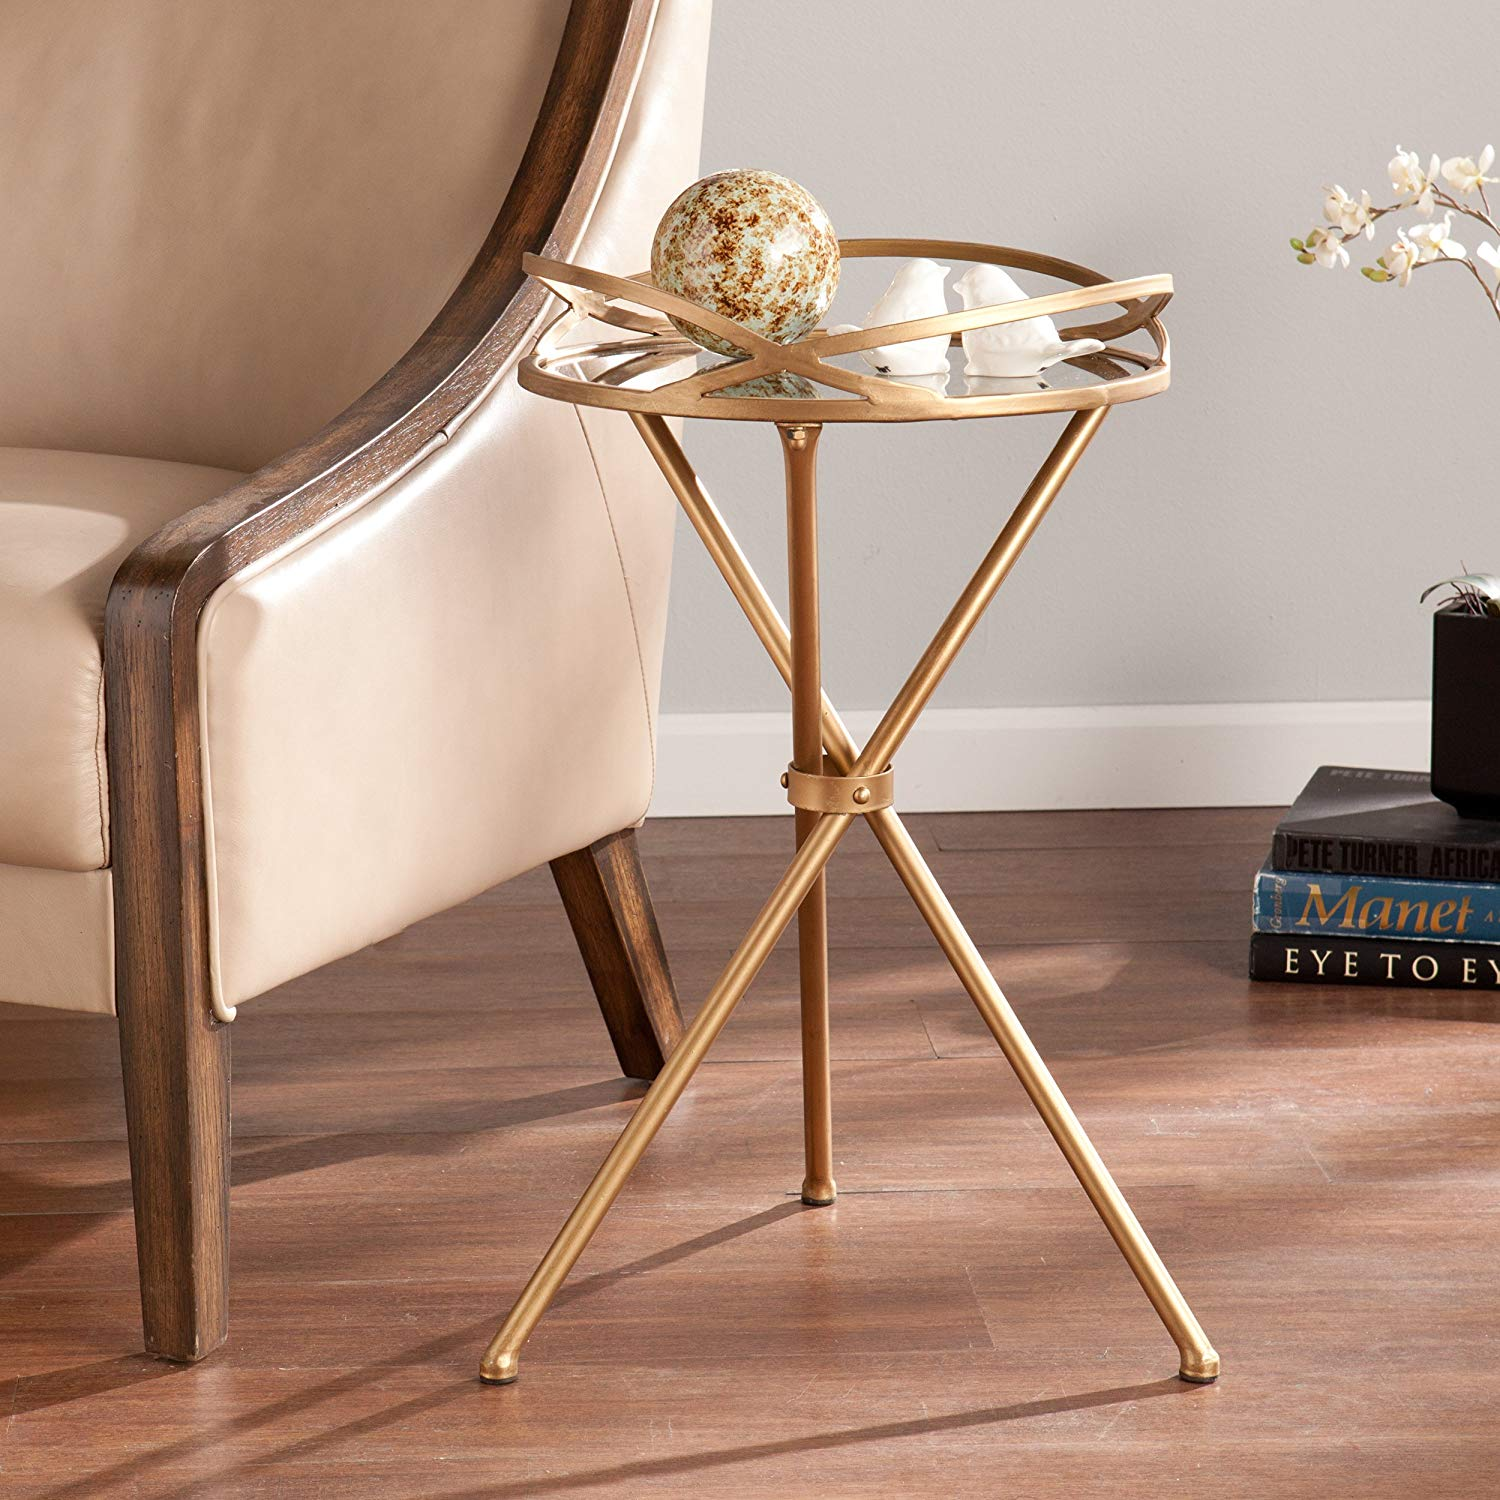 sei leslie metal mirrored accent table kitchen dining clarissa modern lamp designs pottery barn rustic pedestal paper shades black coffee mid century and chairs champagne ice